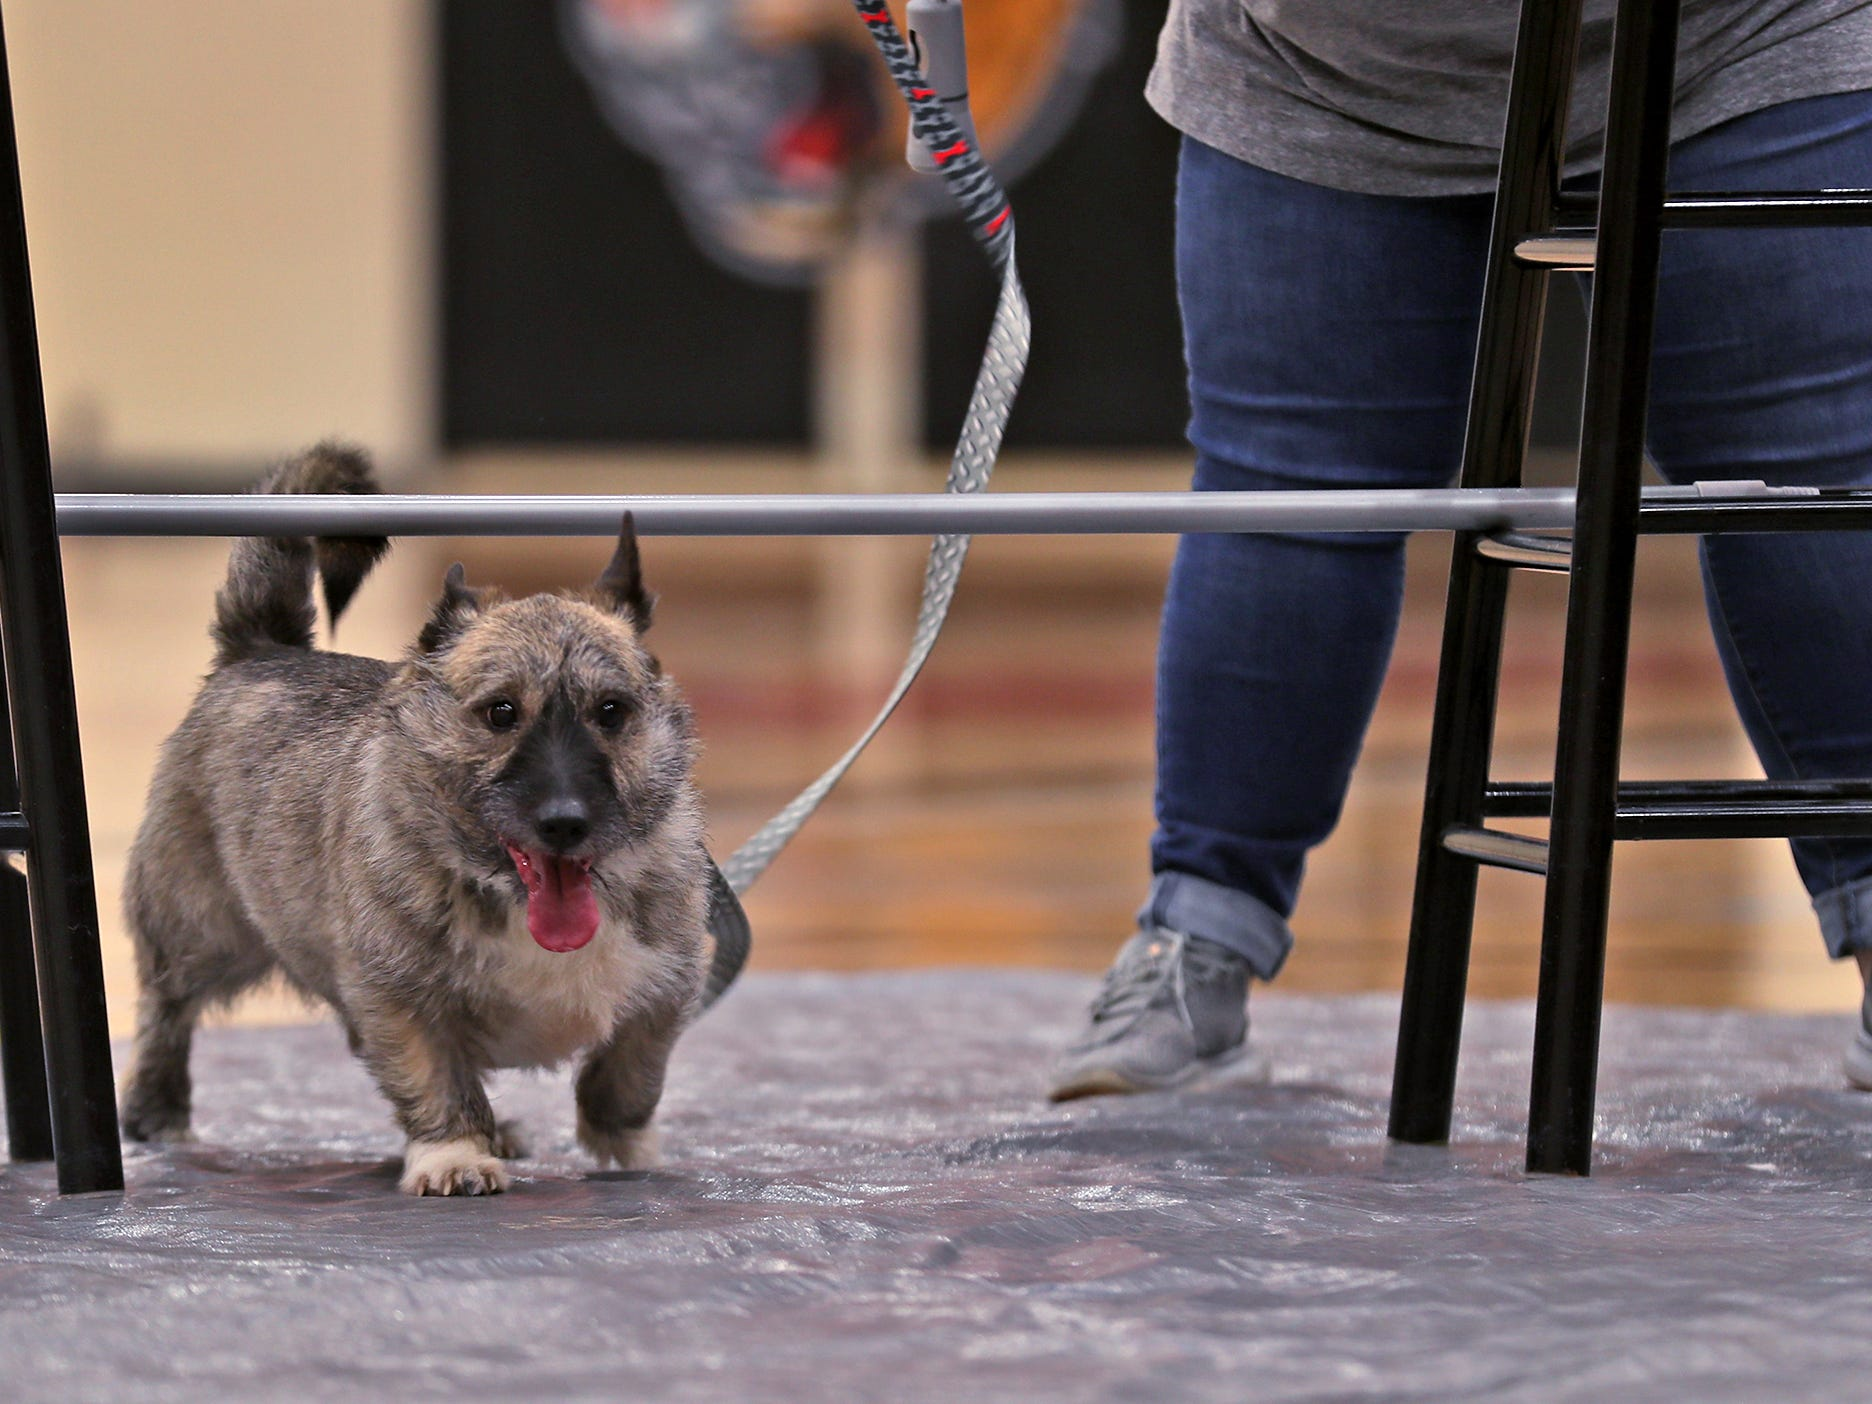 Walter heads under the limbo bar at the Indianapolis Corgi Limbo & Costume Contest at IUPUI, Sunday, April 14, 2019.  The event benefits children orphaned by HIV/AIDS in eSwatini, Africa.  It is presented by the Give Hope, Fight Poverty IUPUI chapter.